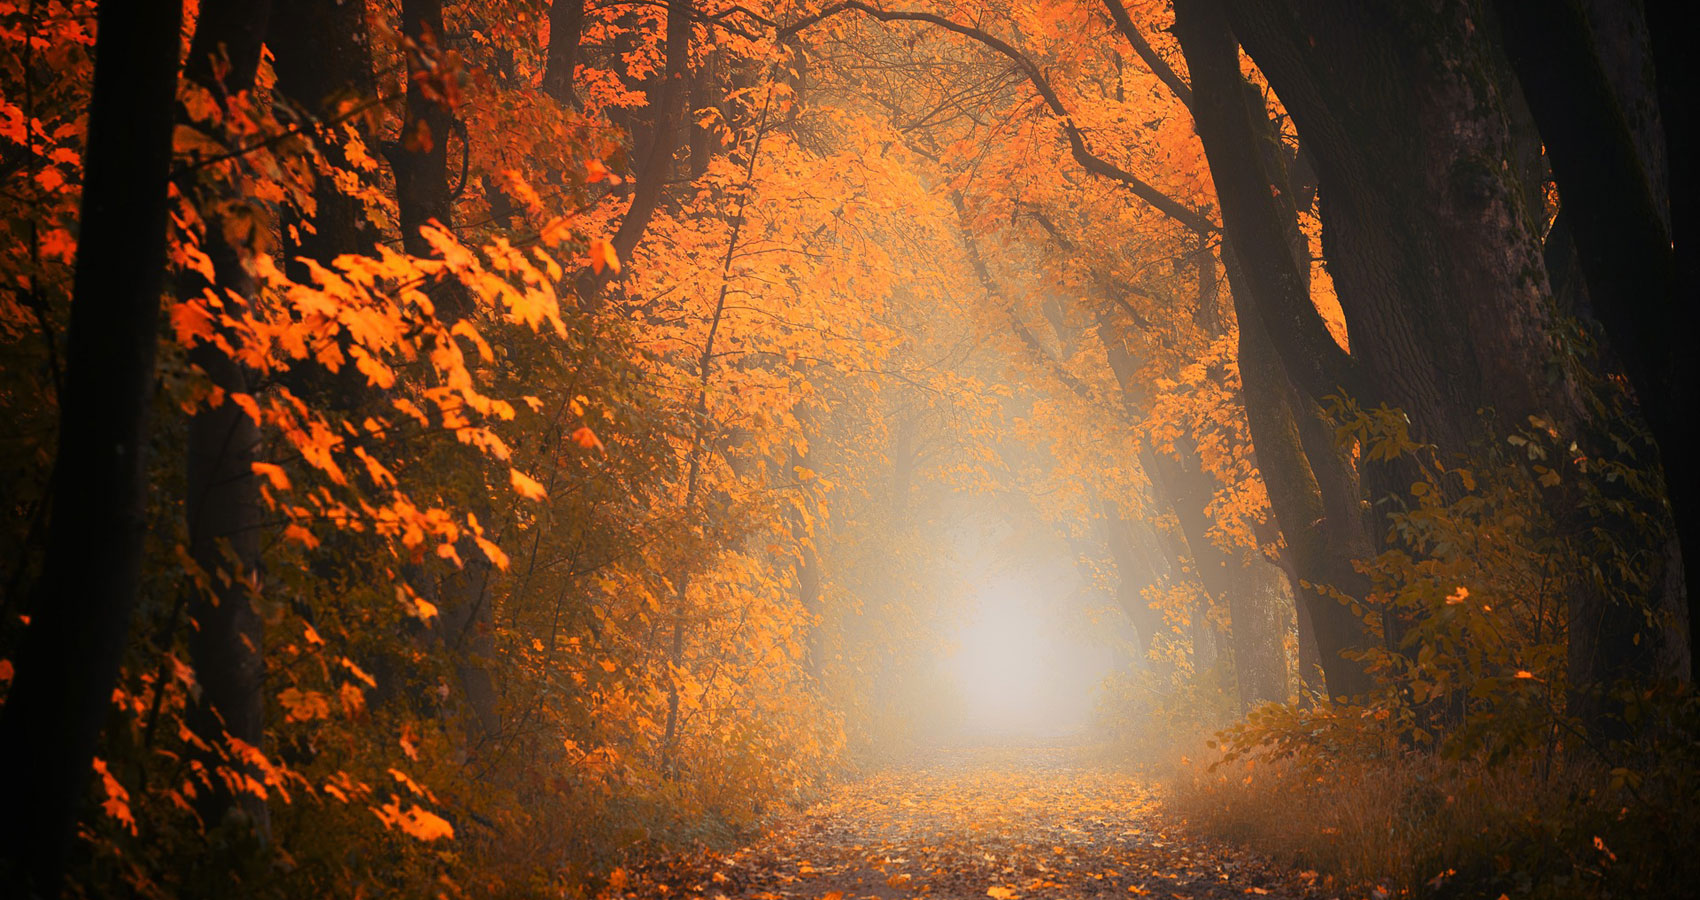 Autumn, a poem written by Yash Tiwari at Spillwords.com